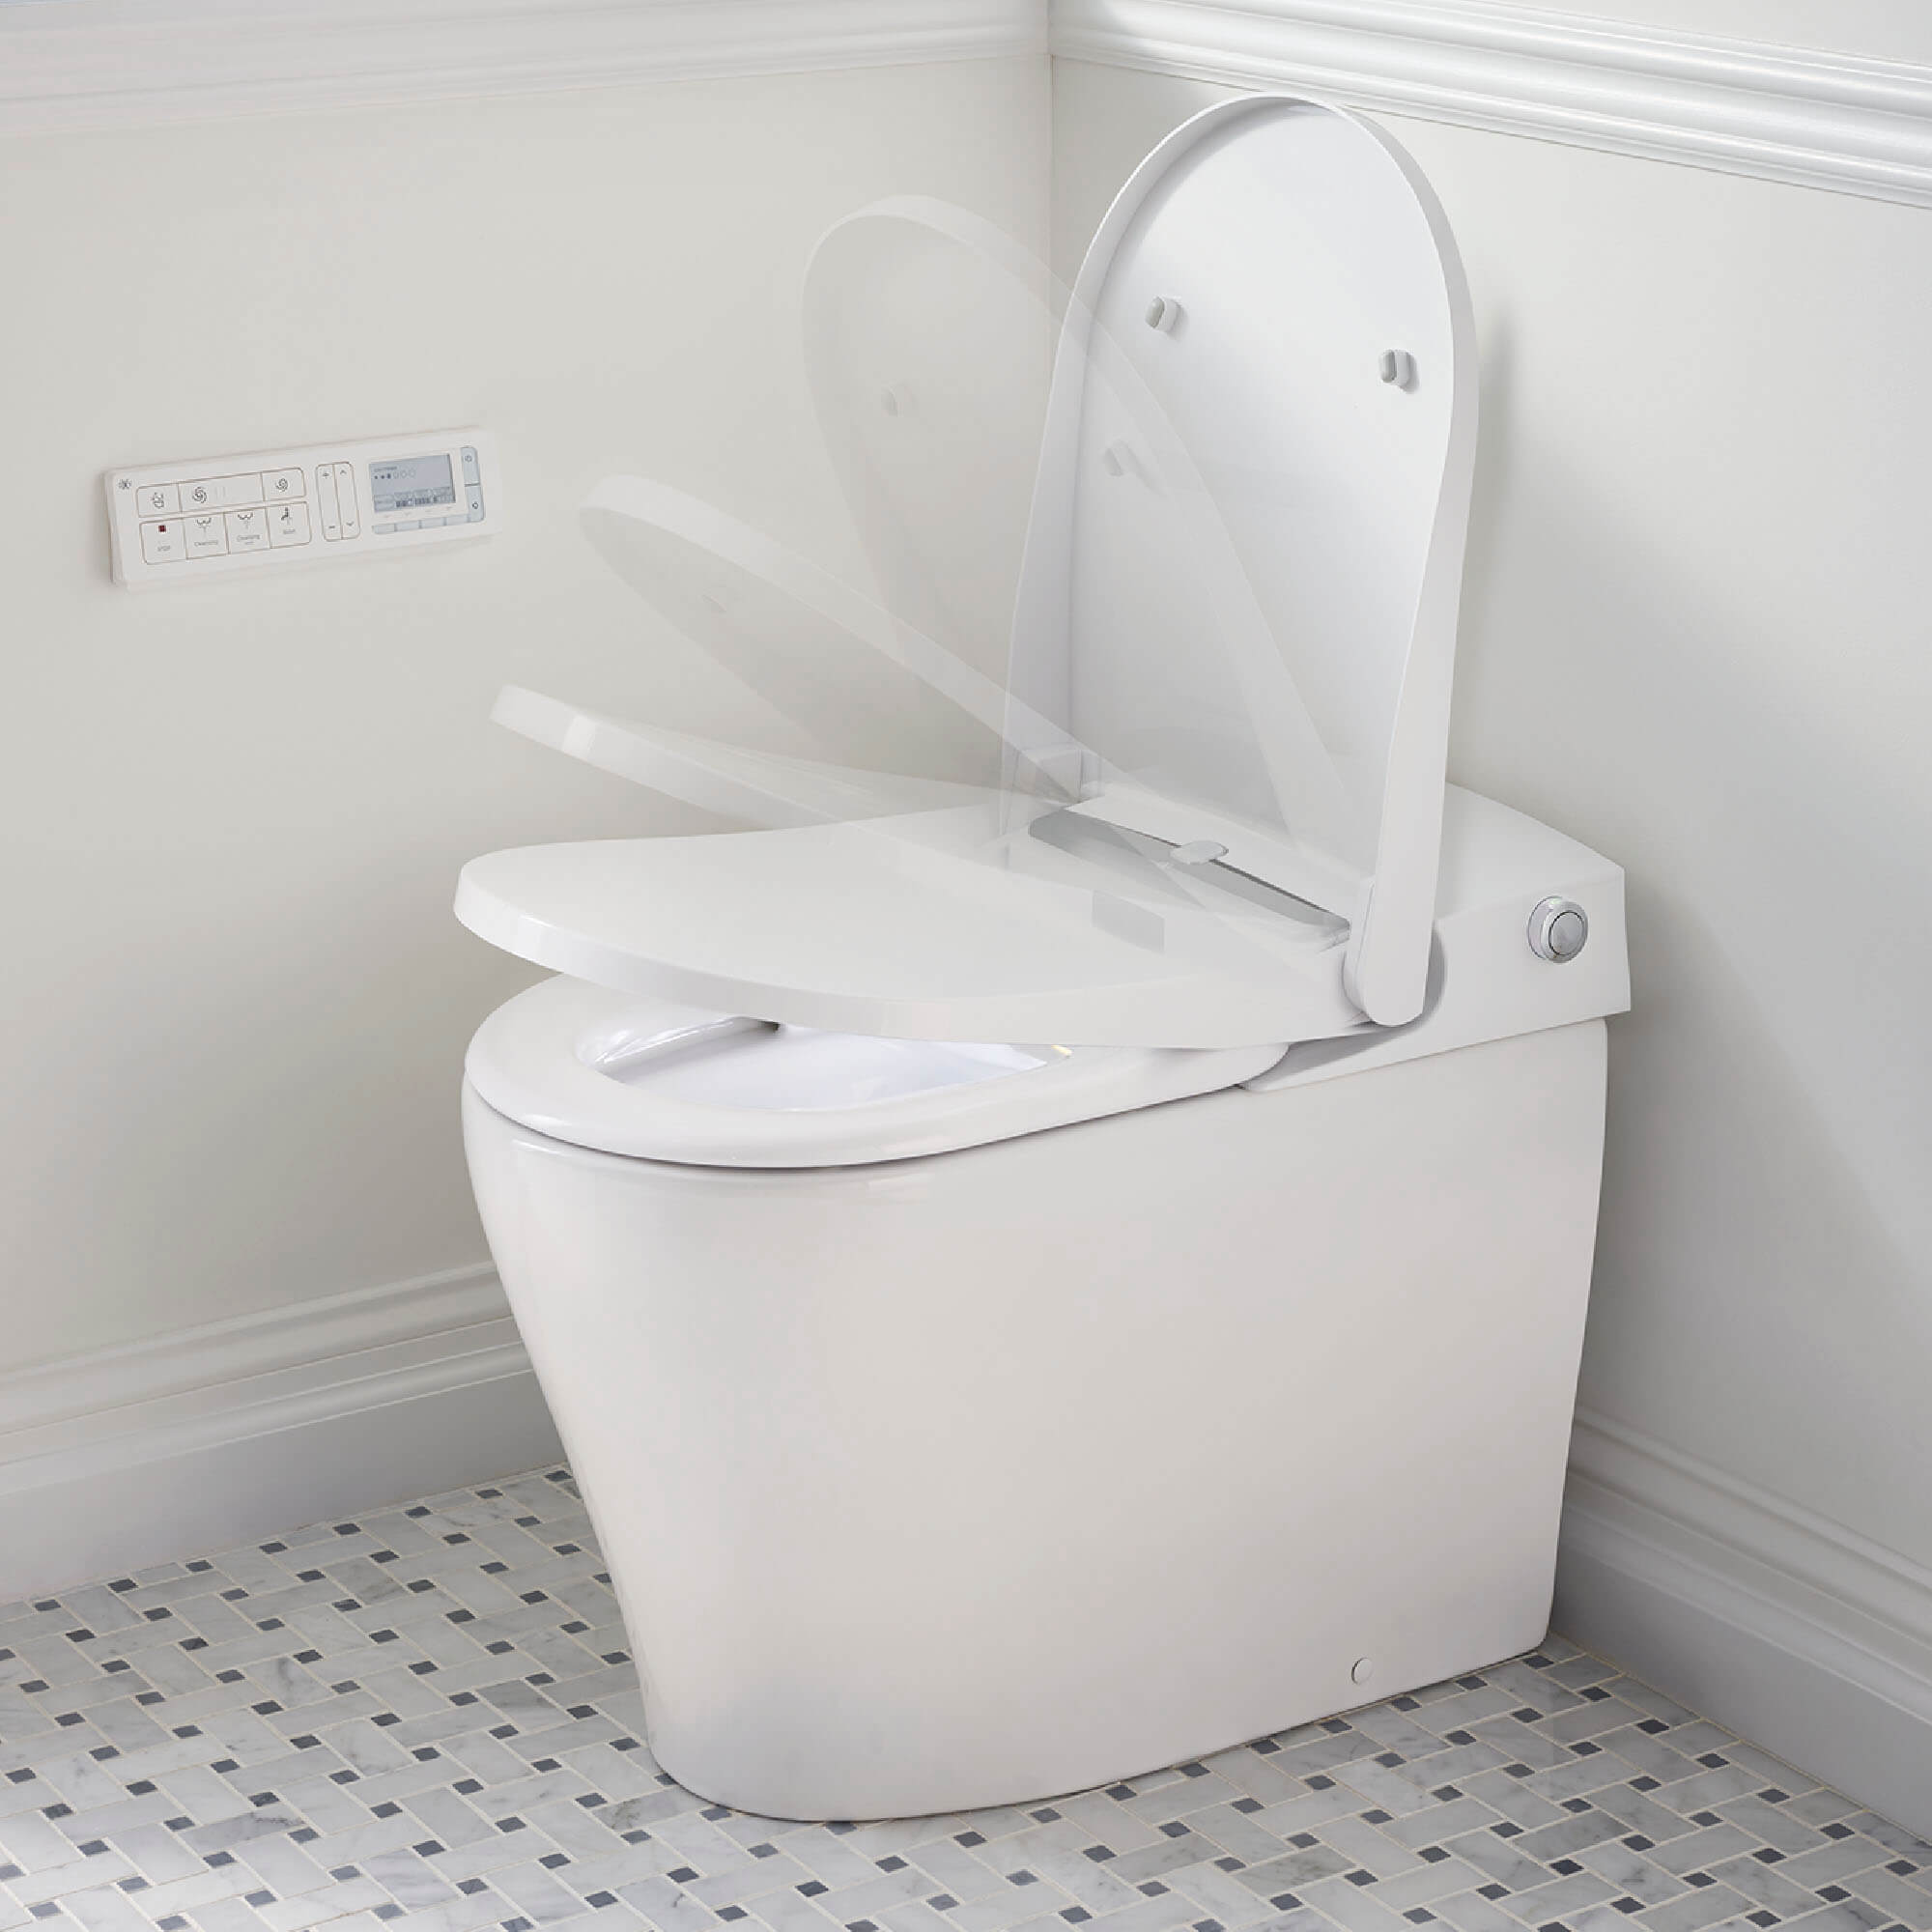 AT200 LS SpaLet Bidet Toilet with Automatic Seat